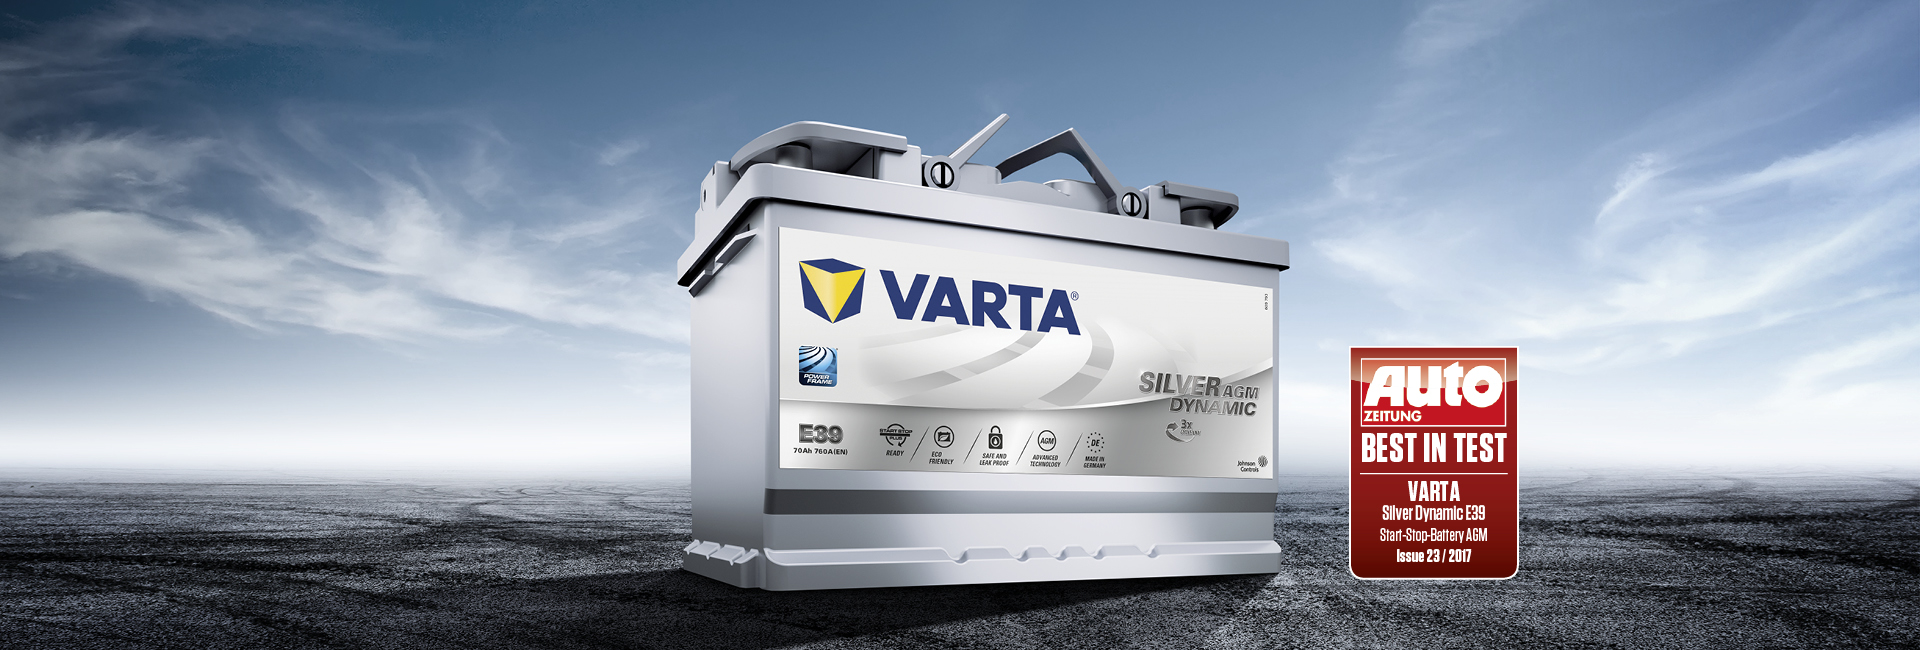 En Nz Varta Automotive